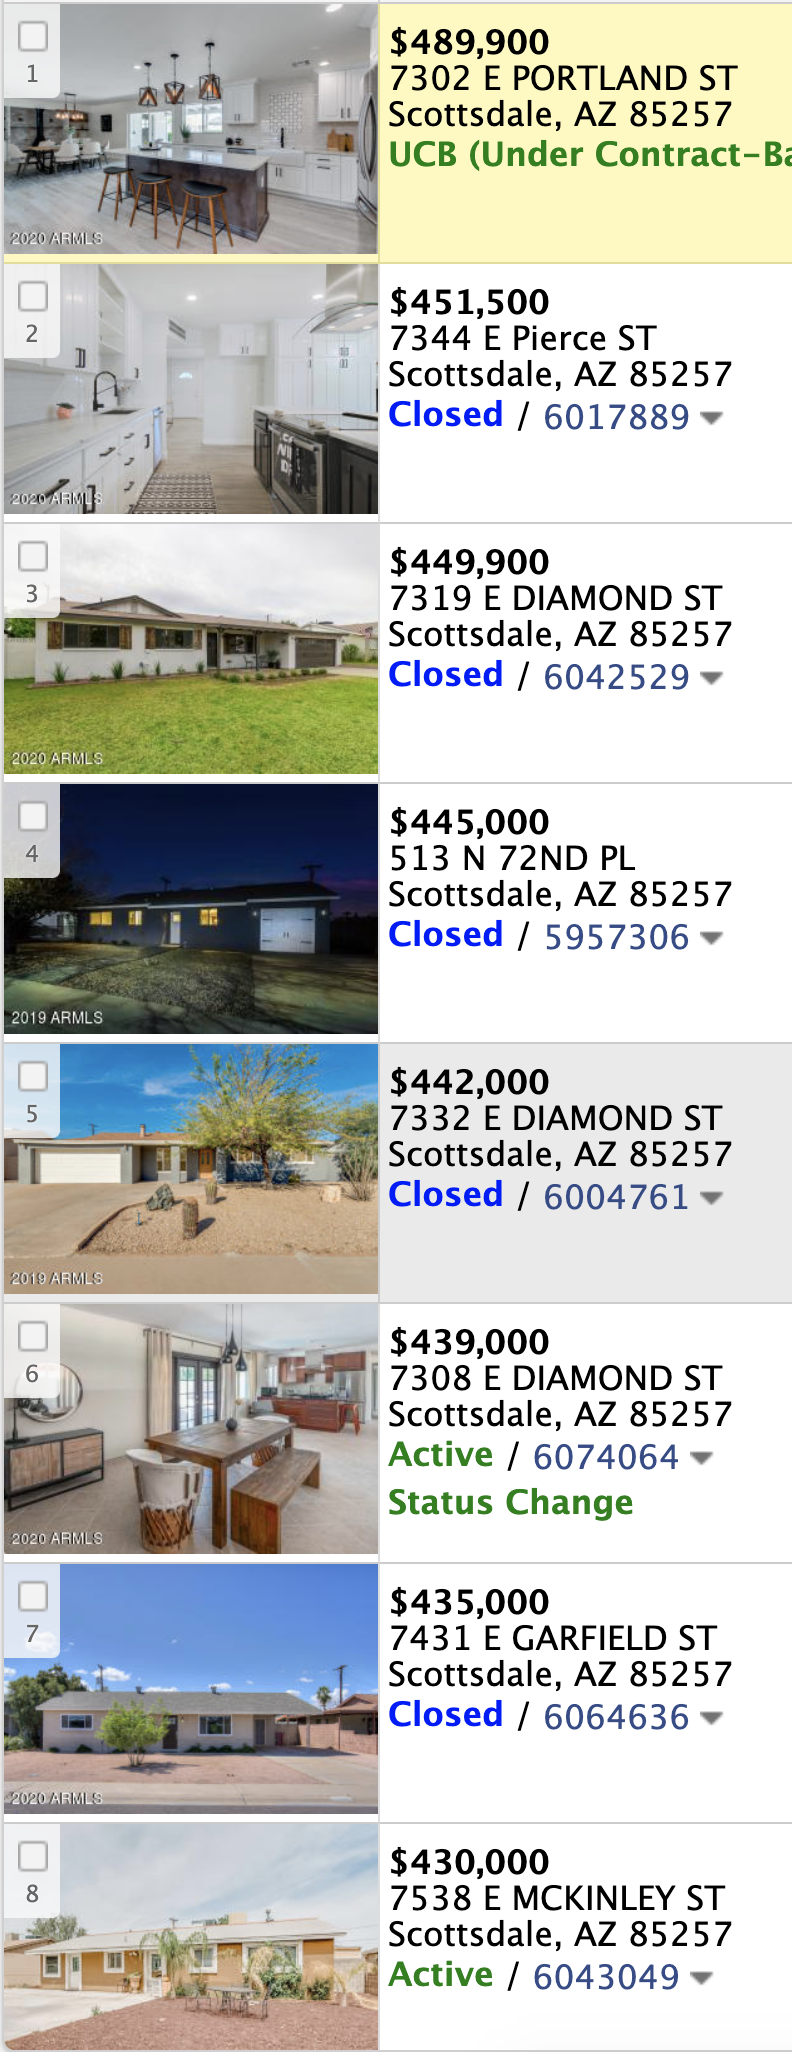 7325 E Papago Dr Scottsdale, AZ 85257 comps list